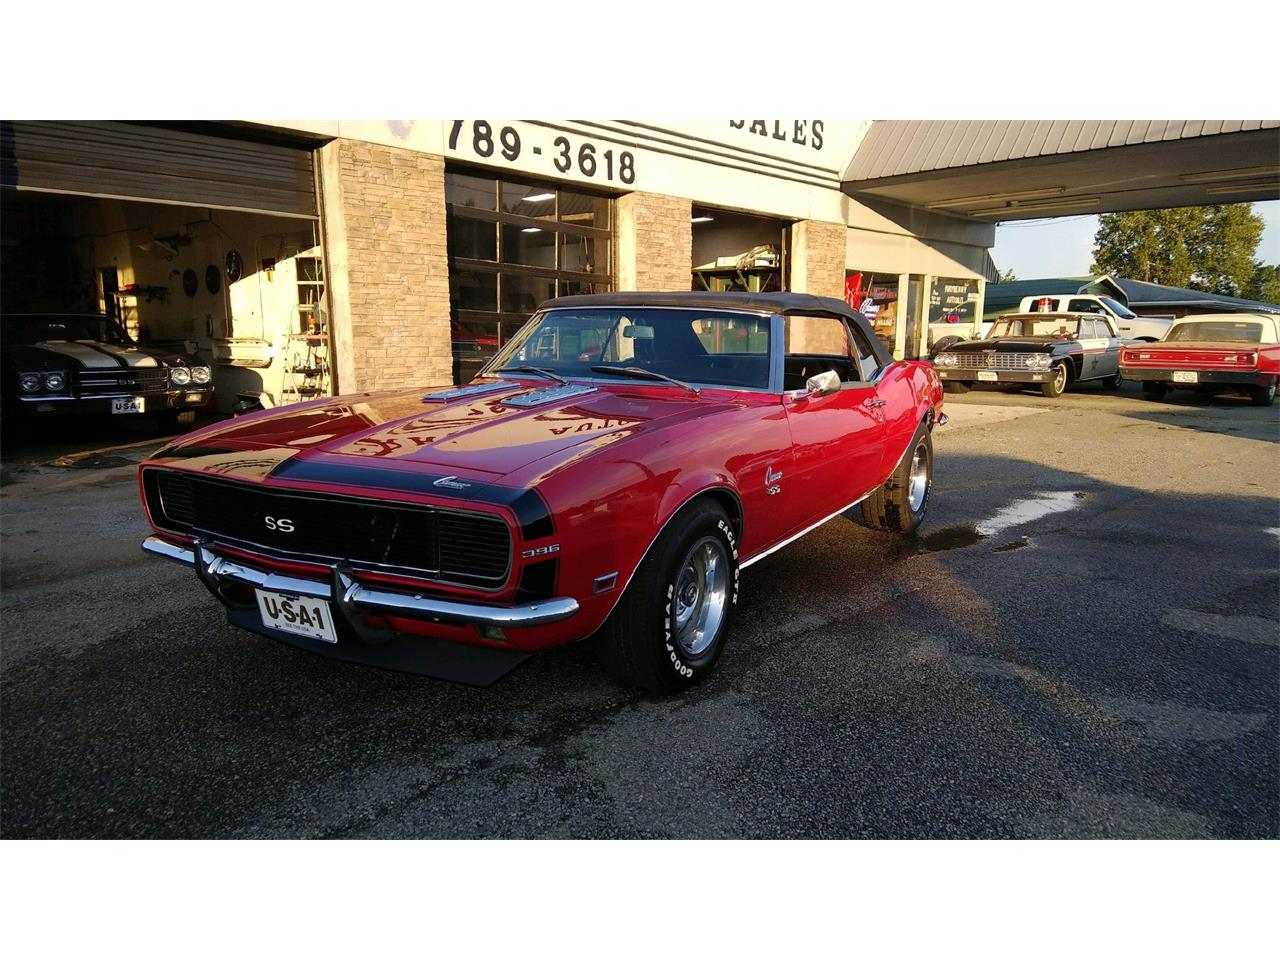 1968 Chevrolet Camaro Rs Ss Convertible For Sale Large Picture Of 68 Located In Auction Vehicle Oie4